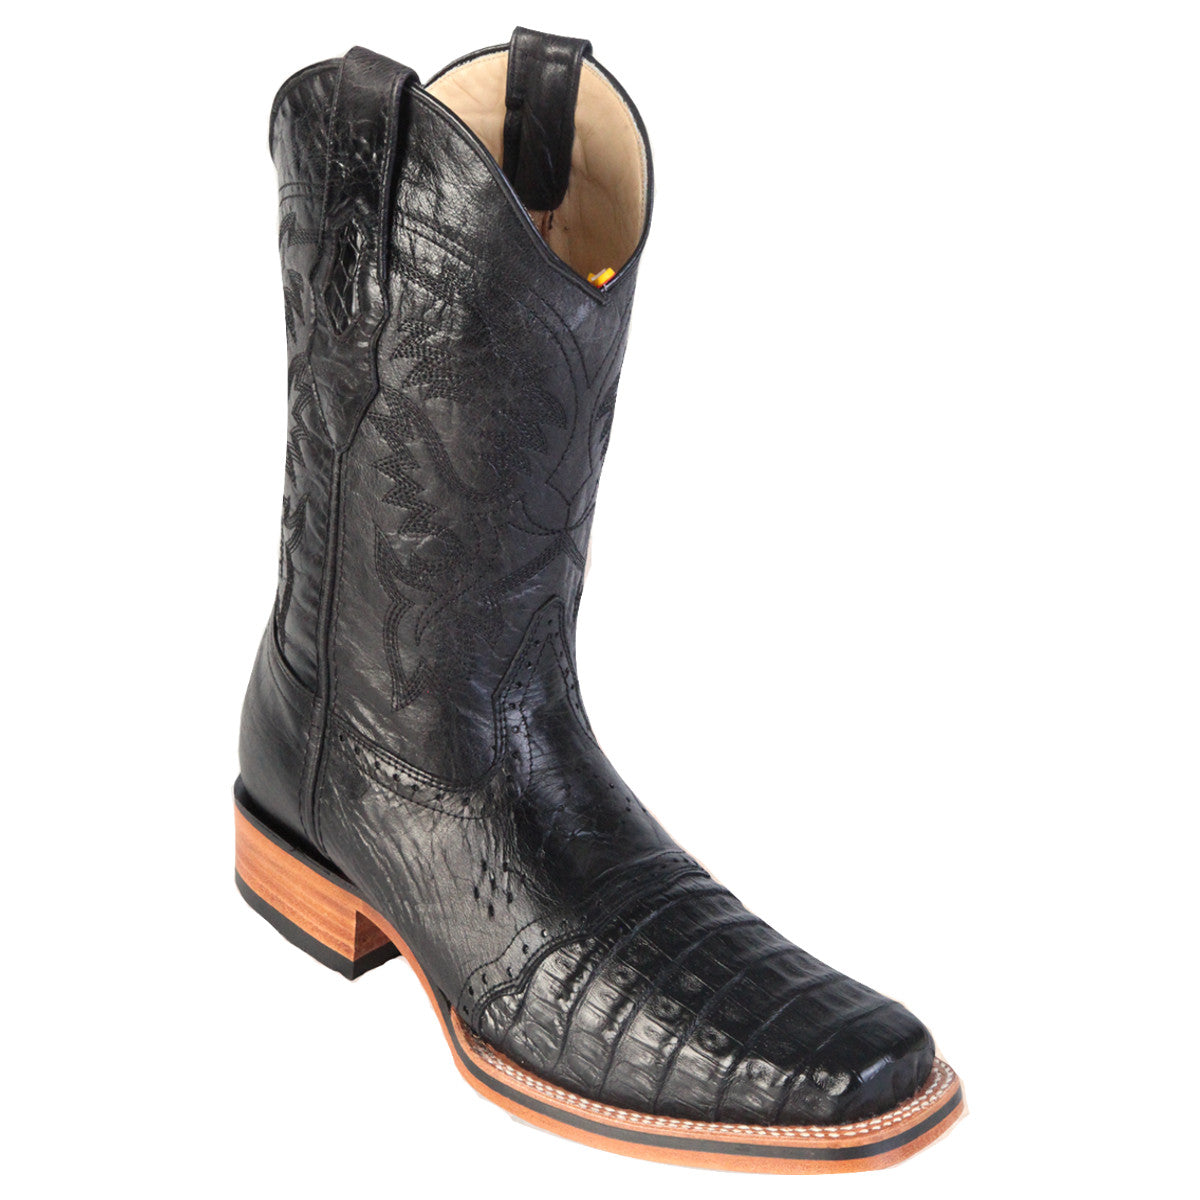 Los Altos Boots Rodeo Boot Caiman Belly w/Saddle